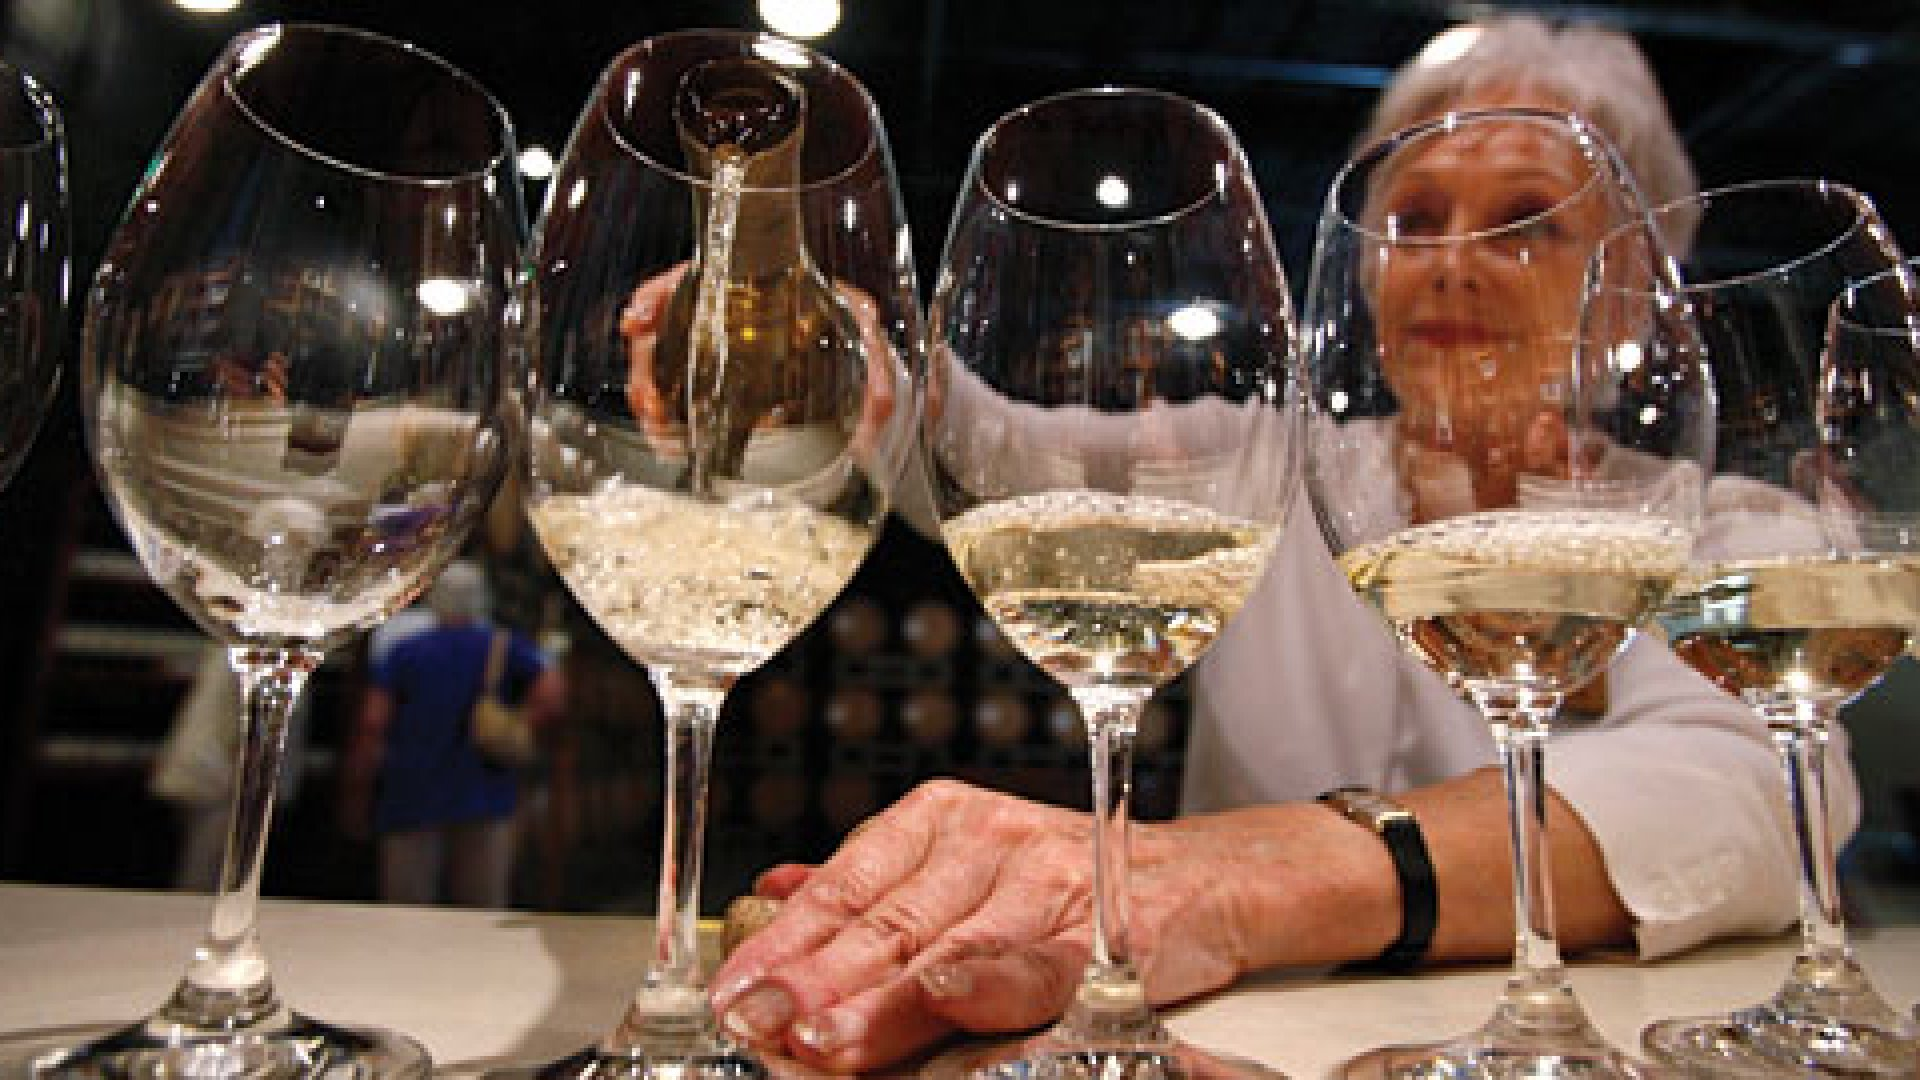 In this Aug. 26, 2010 photo, Elizabeth Richardson pours wine for a tour group at the Chateau Ste. Michelle winery in Woodinville, Wash. Hong Kong and mainland China are developing a strong thirst for wine and Washington and Oregon are hoping for a taste of those markets.